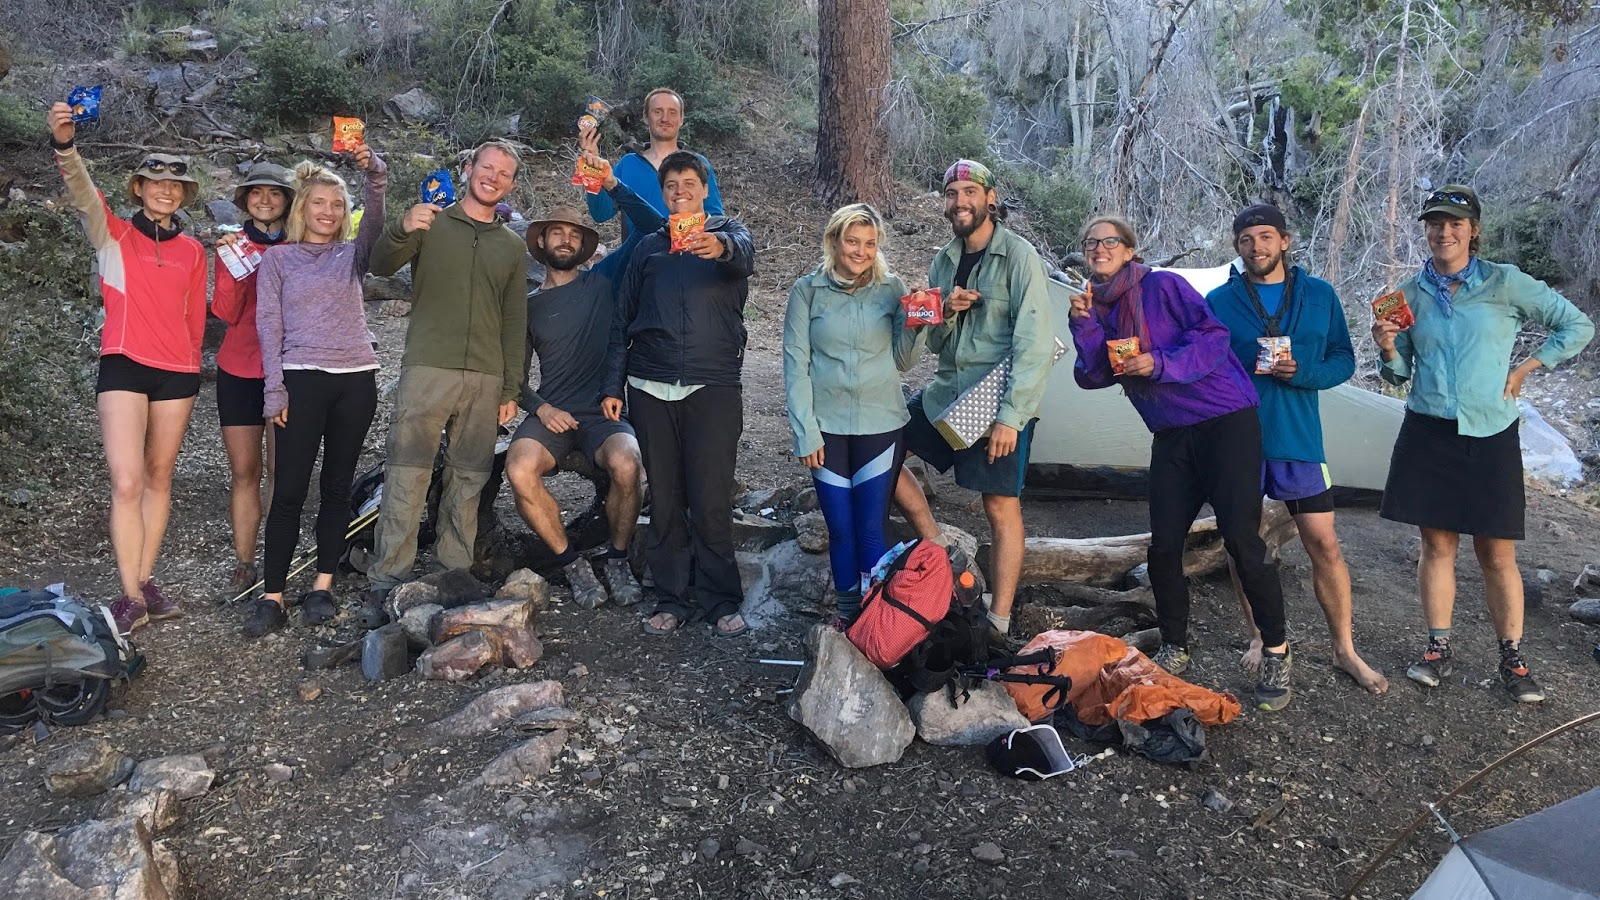 We Were ALL Out Early This Morning Beating Our Goal Of A 6am Start Time By Ten Minutes Today Will Be Hiking All Day Through The Lake Fire Closure From